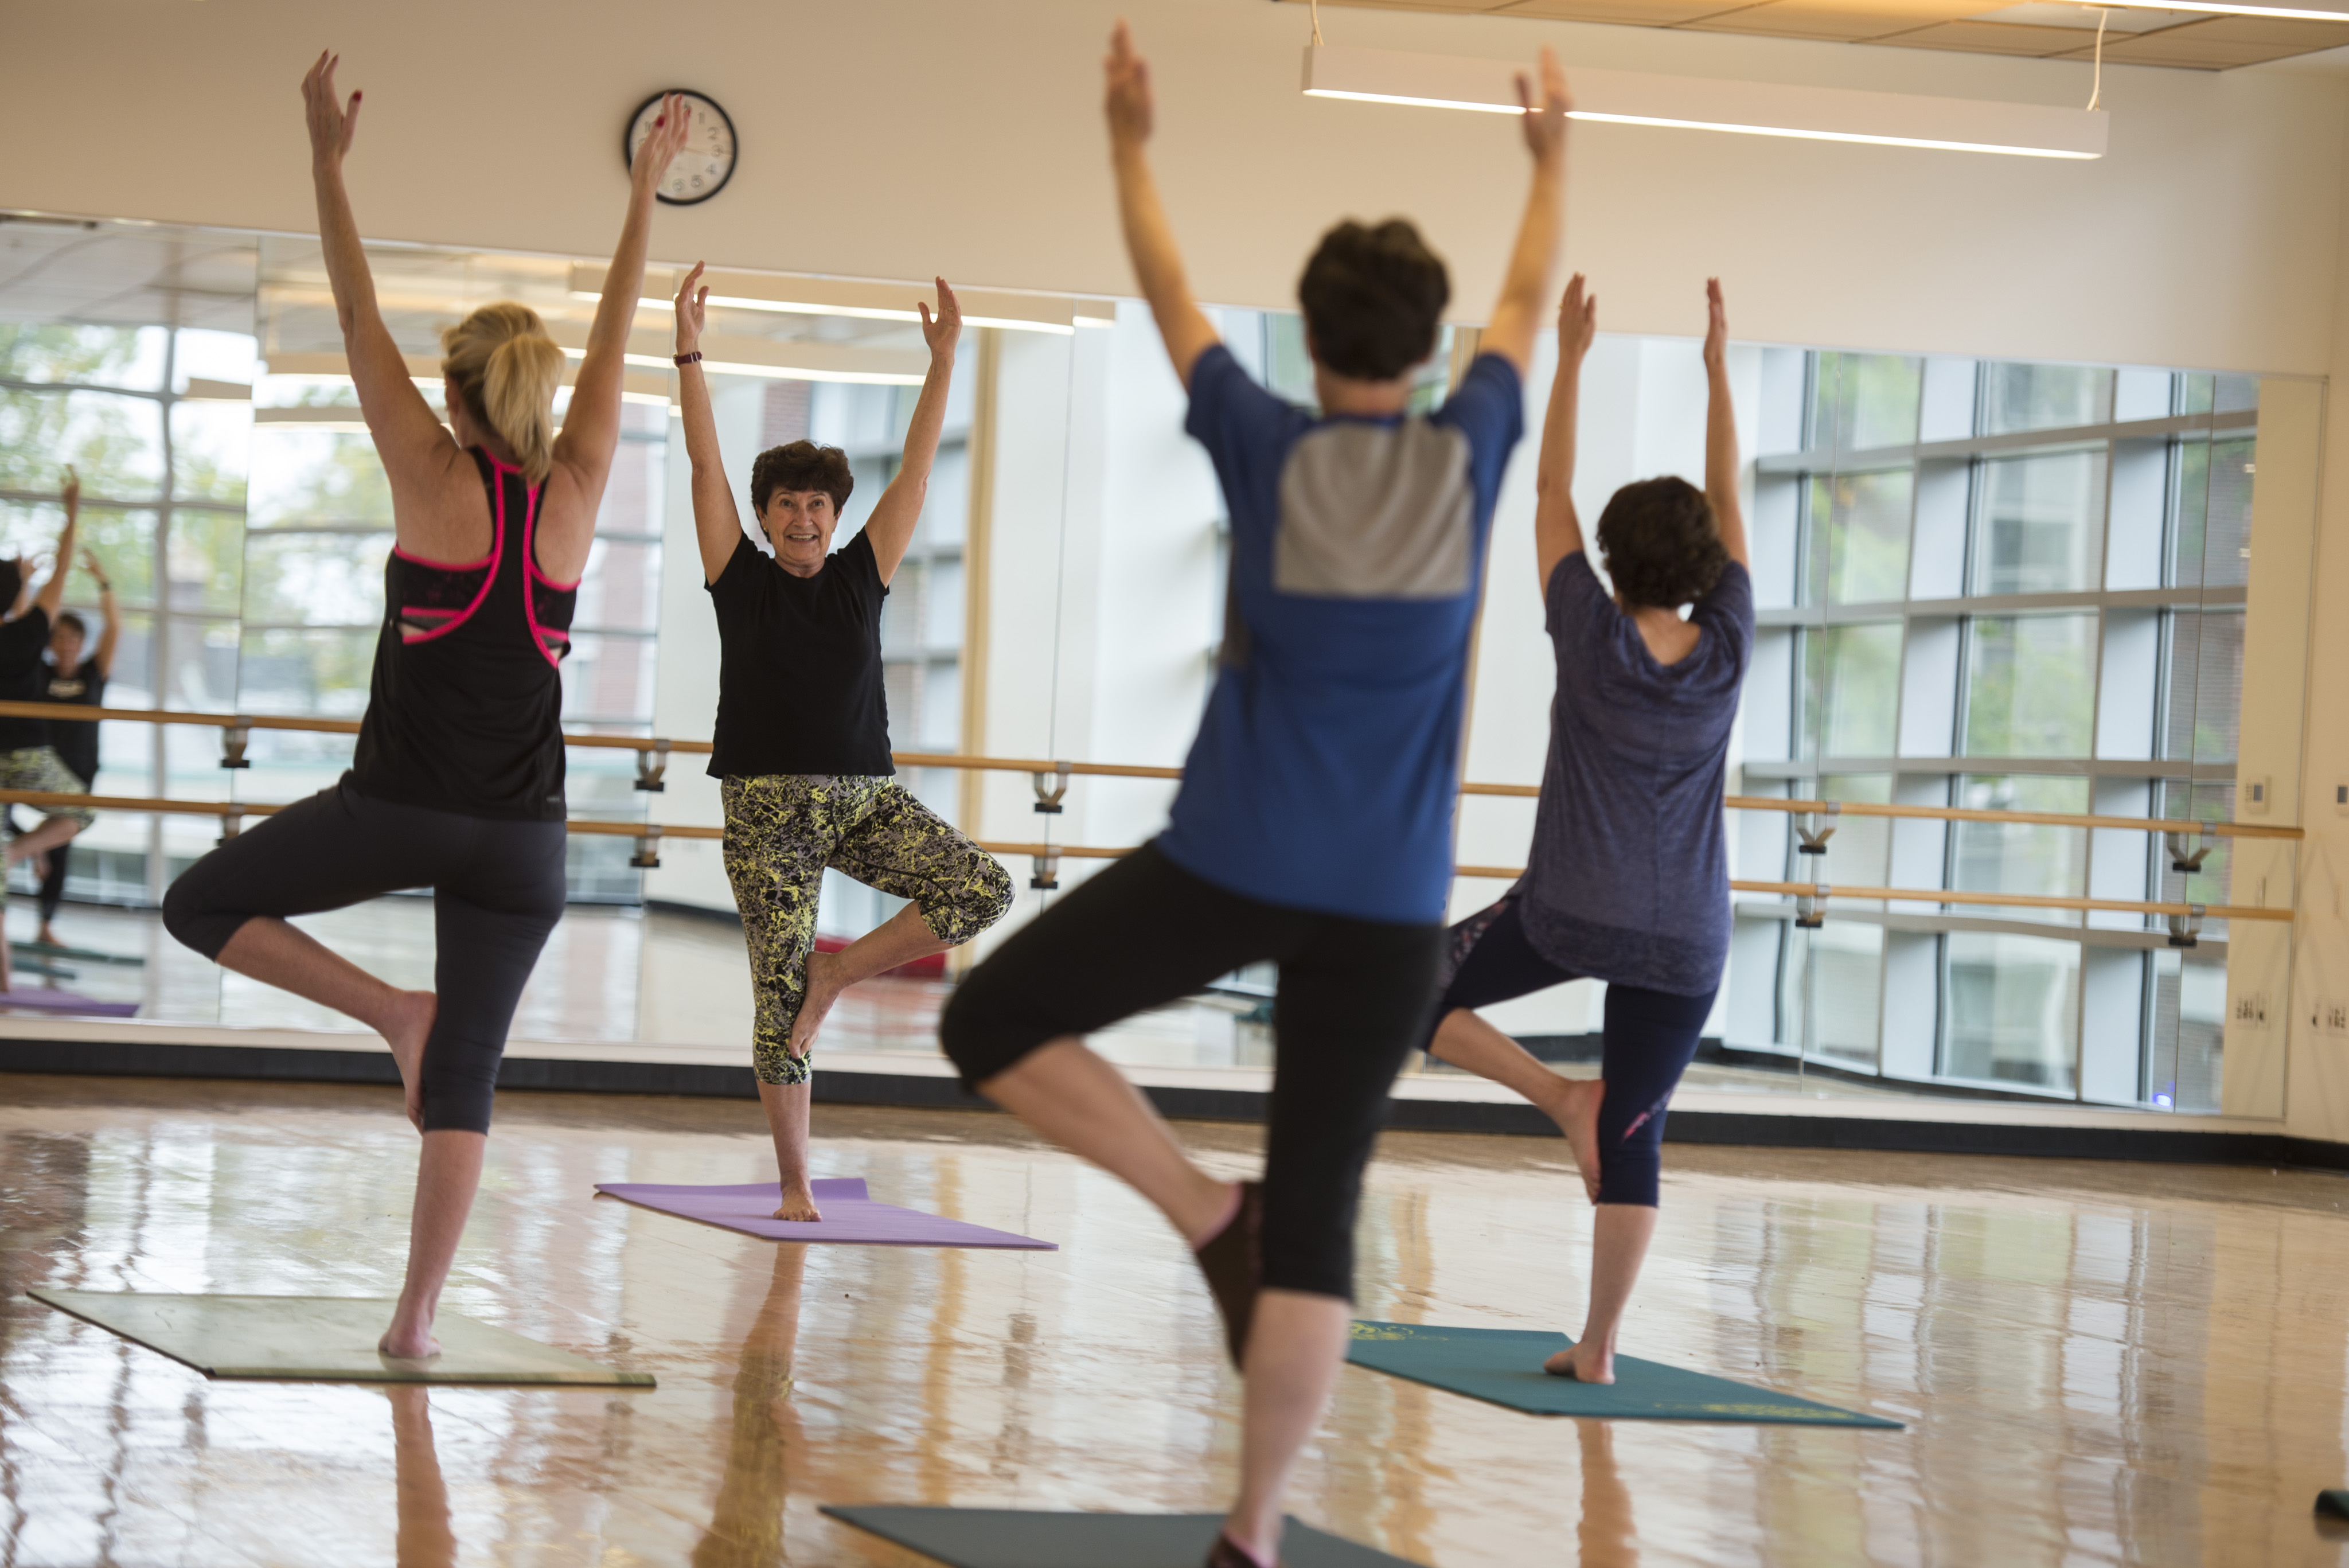 women in a yoga class facing the teacher wearing workout clothes with their arms raised over their heads and balancing on one foot